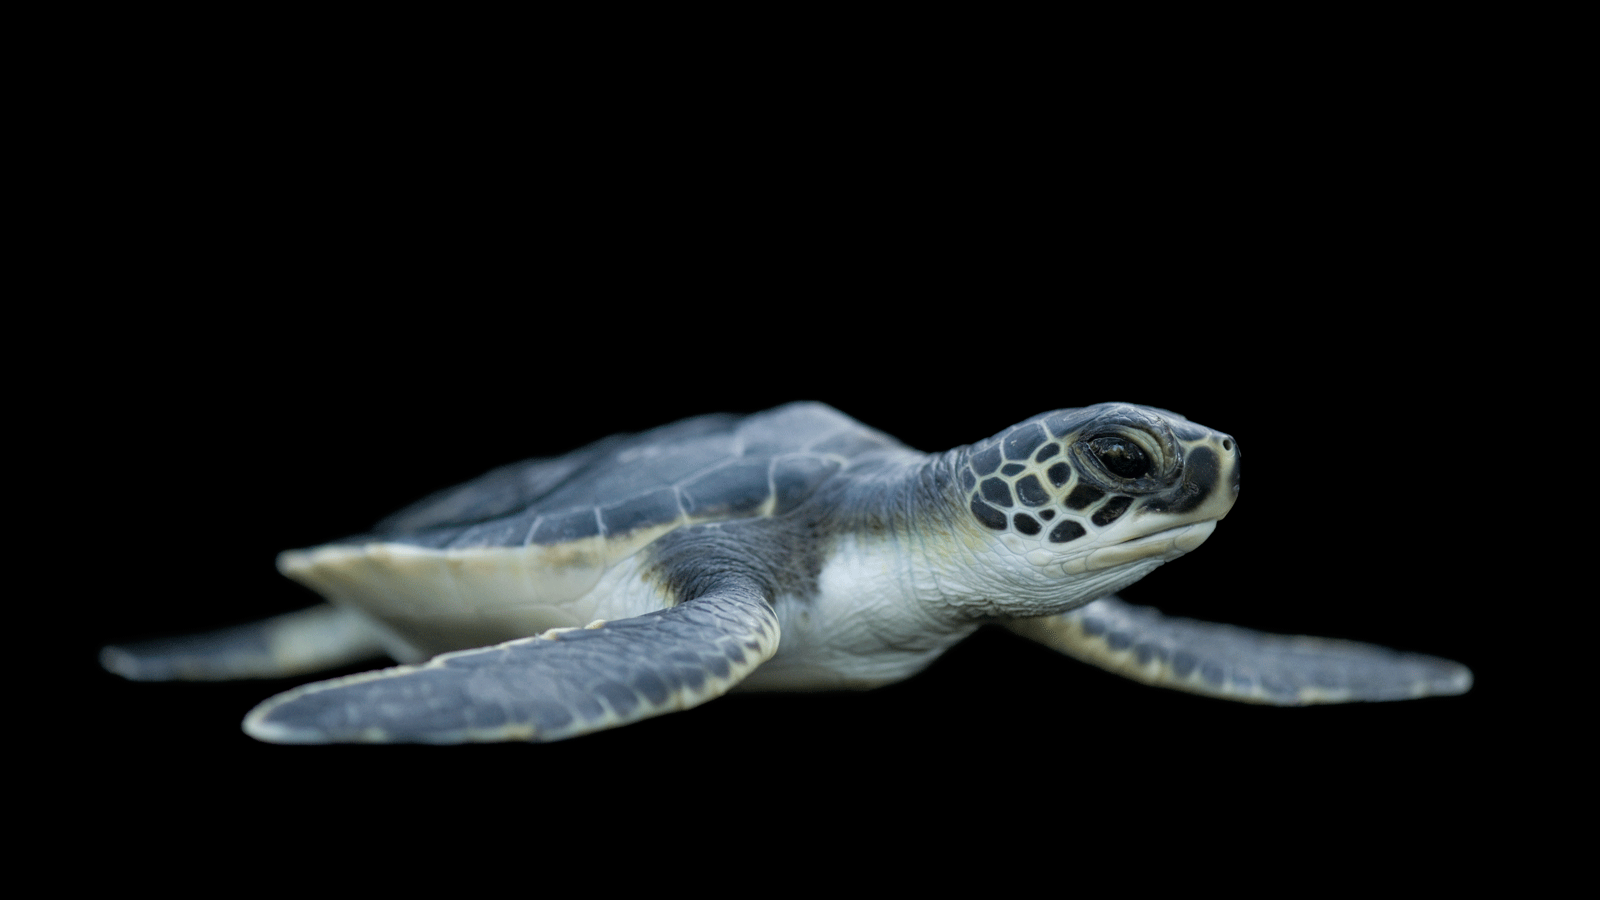 1600x900 Sea Turtle Pictures, 37 Sea Turtle Images and Wallpapers for Mac, PC ...